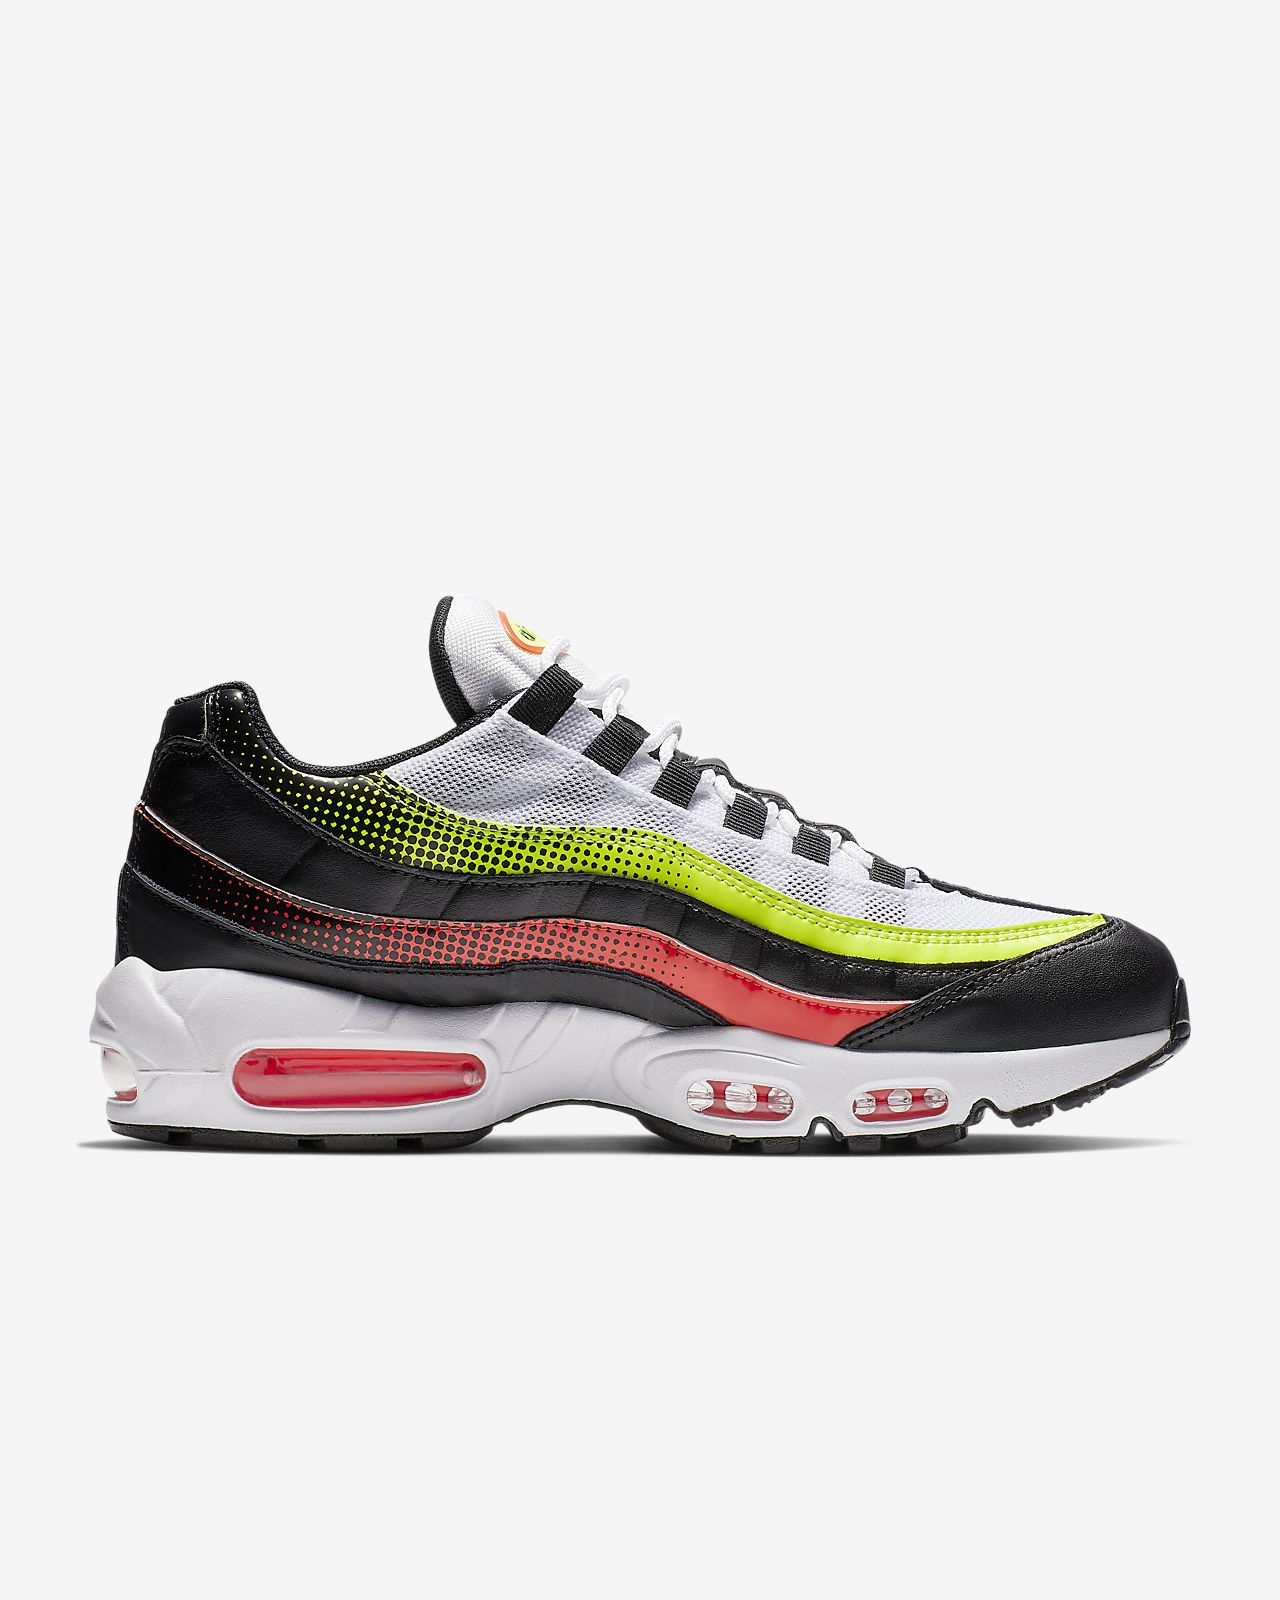 hot sale online 31b5f f0632 ... Nike Air Max 95 SE Men s Shoe